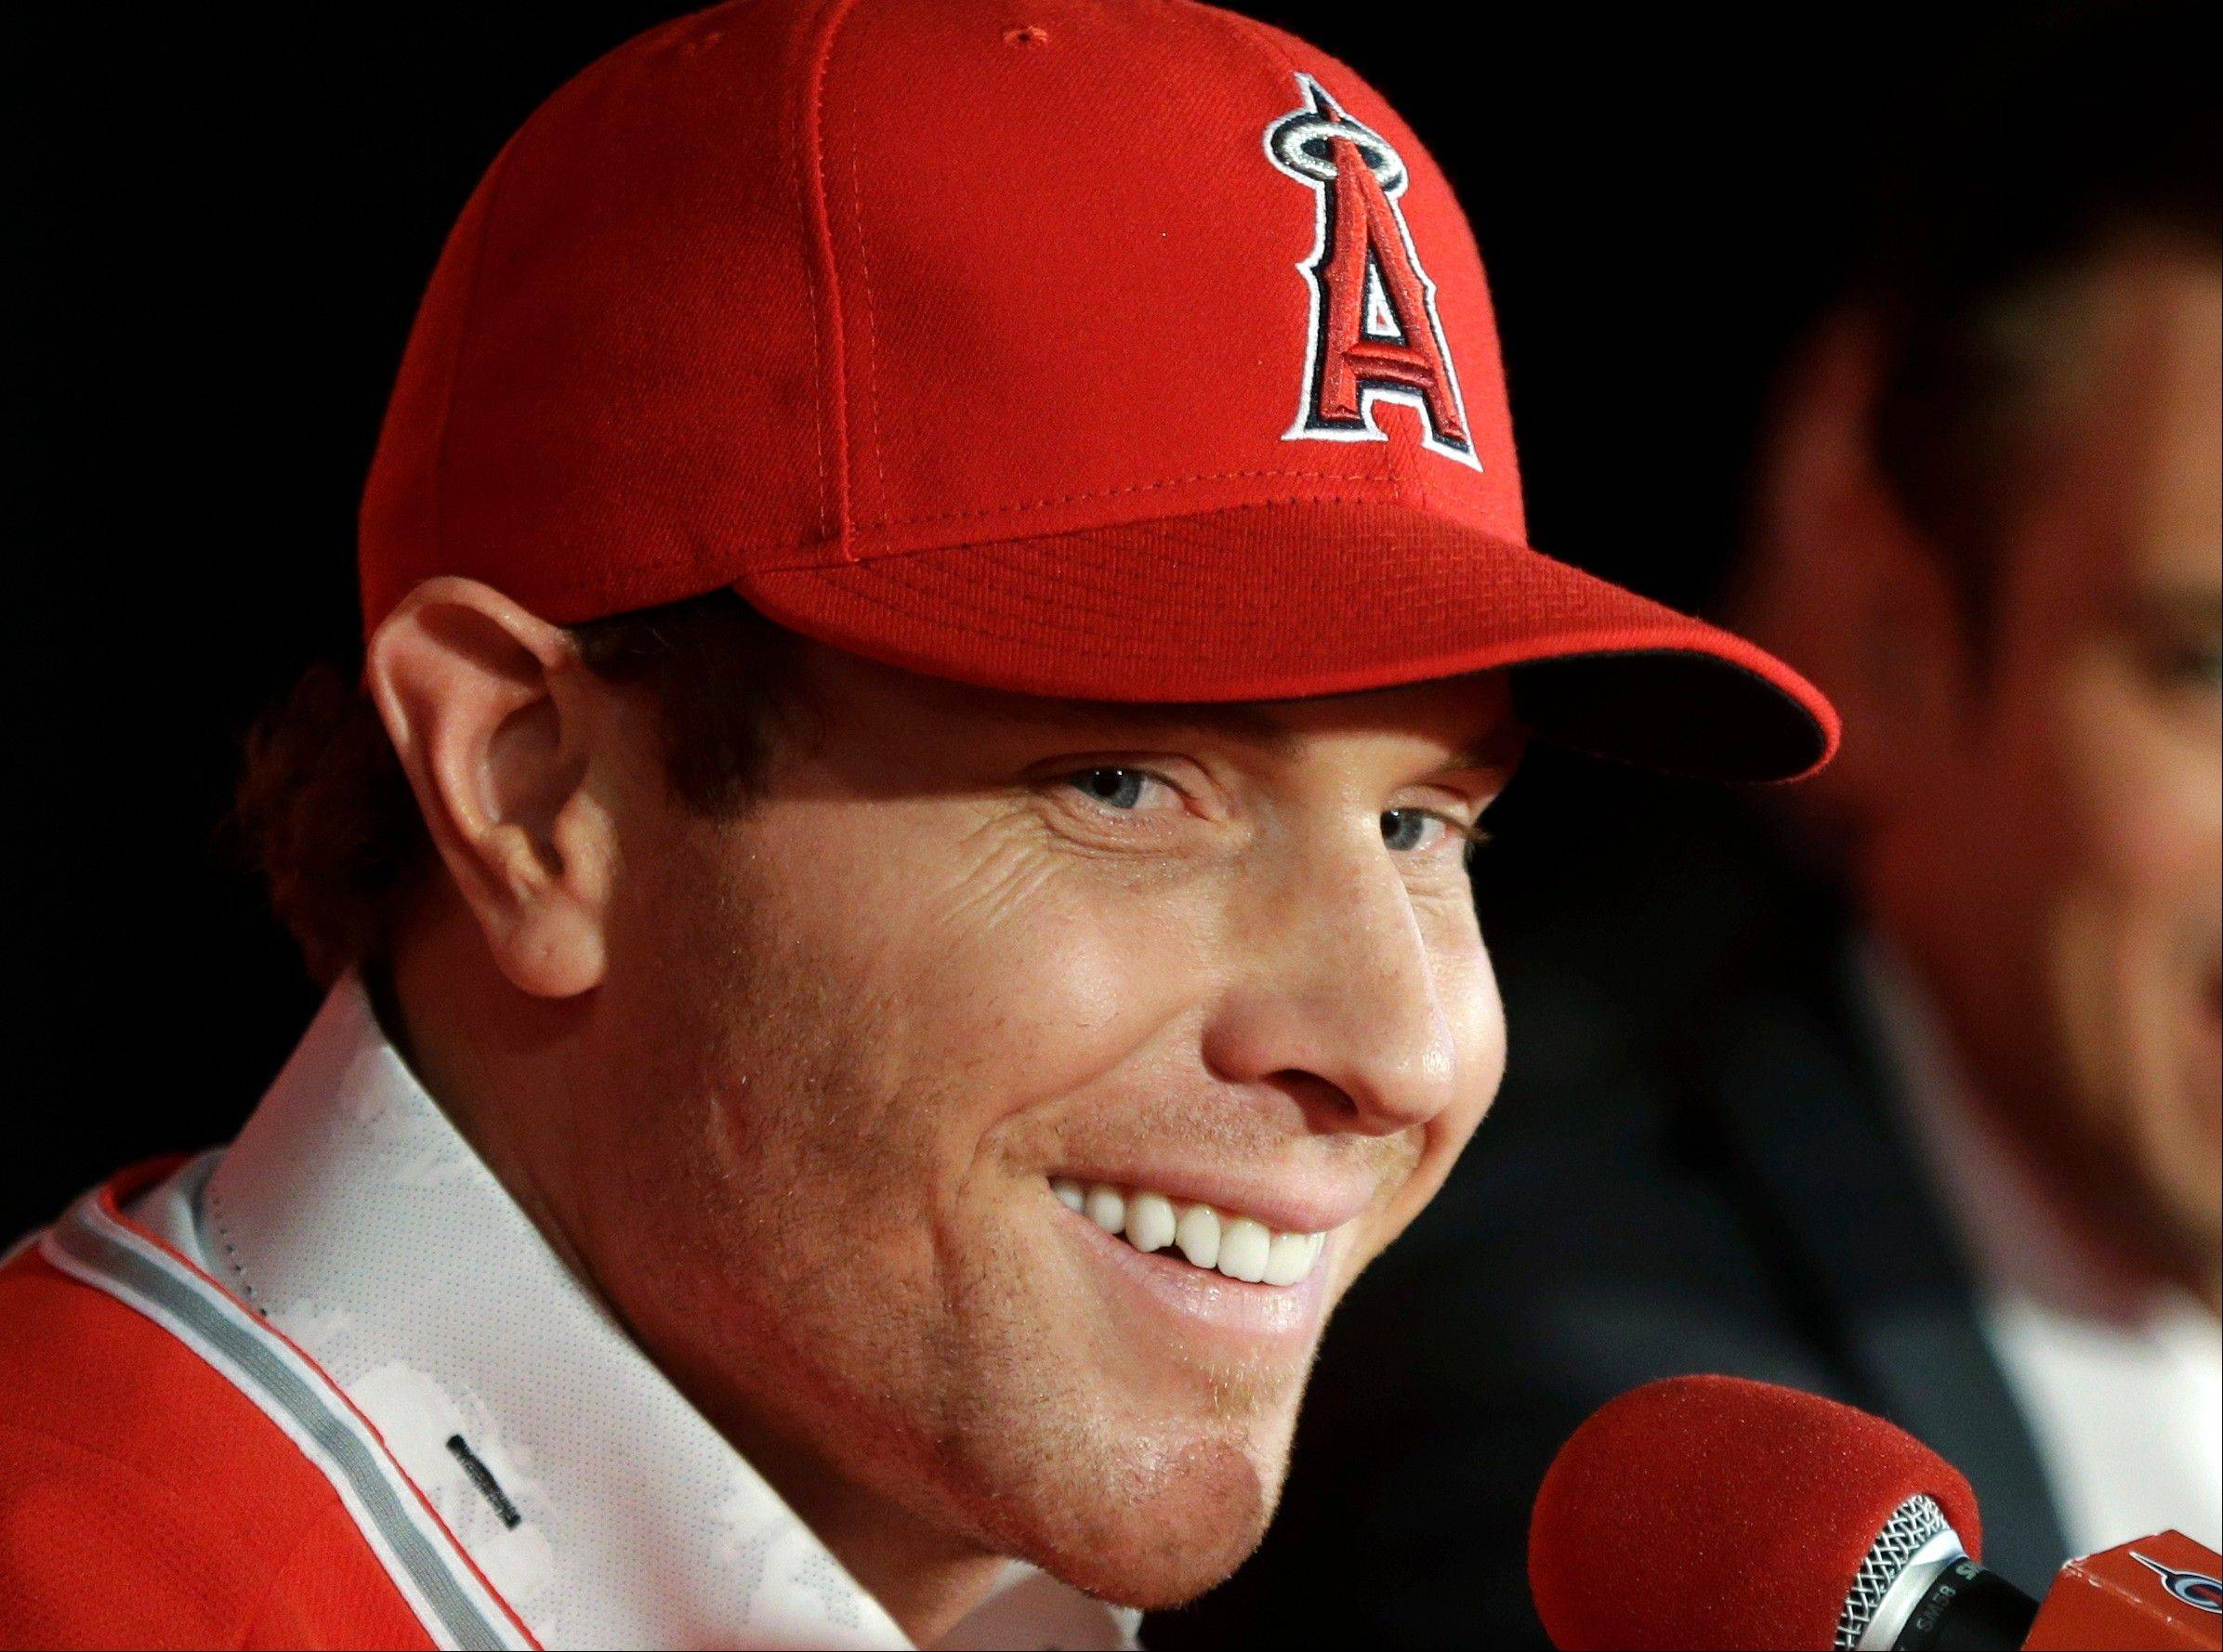 Free-agent outfielder Josh Hamilton talks to the media Saturday during a news conference in Anaheim, Calif. Hamilton, formerly of the Texas Rangers, joined the Los Angeles Angels after signing a $125 million, five-year contract.